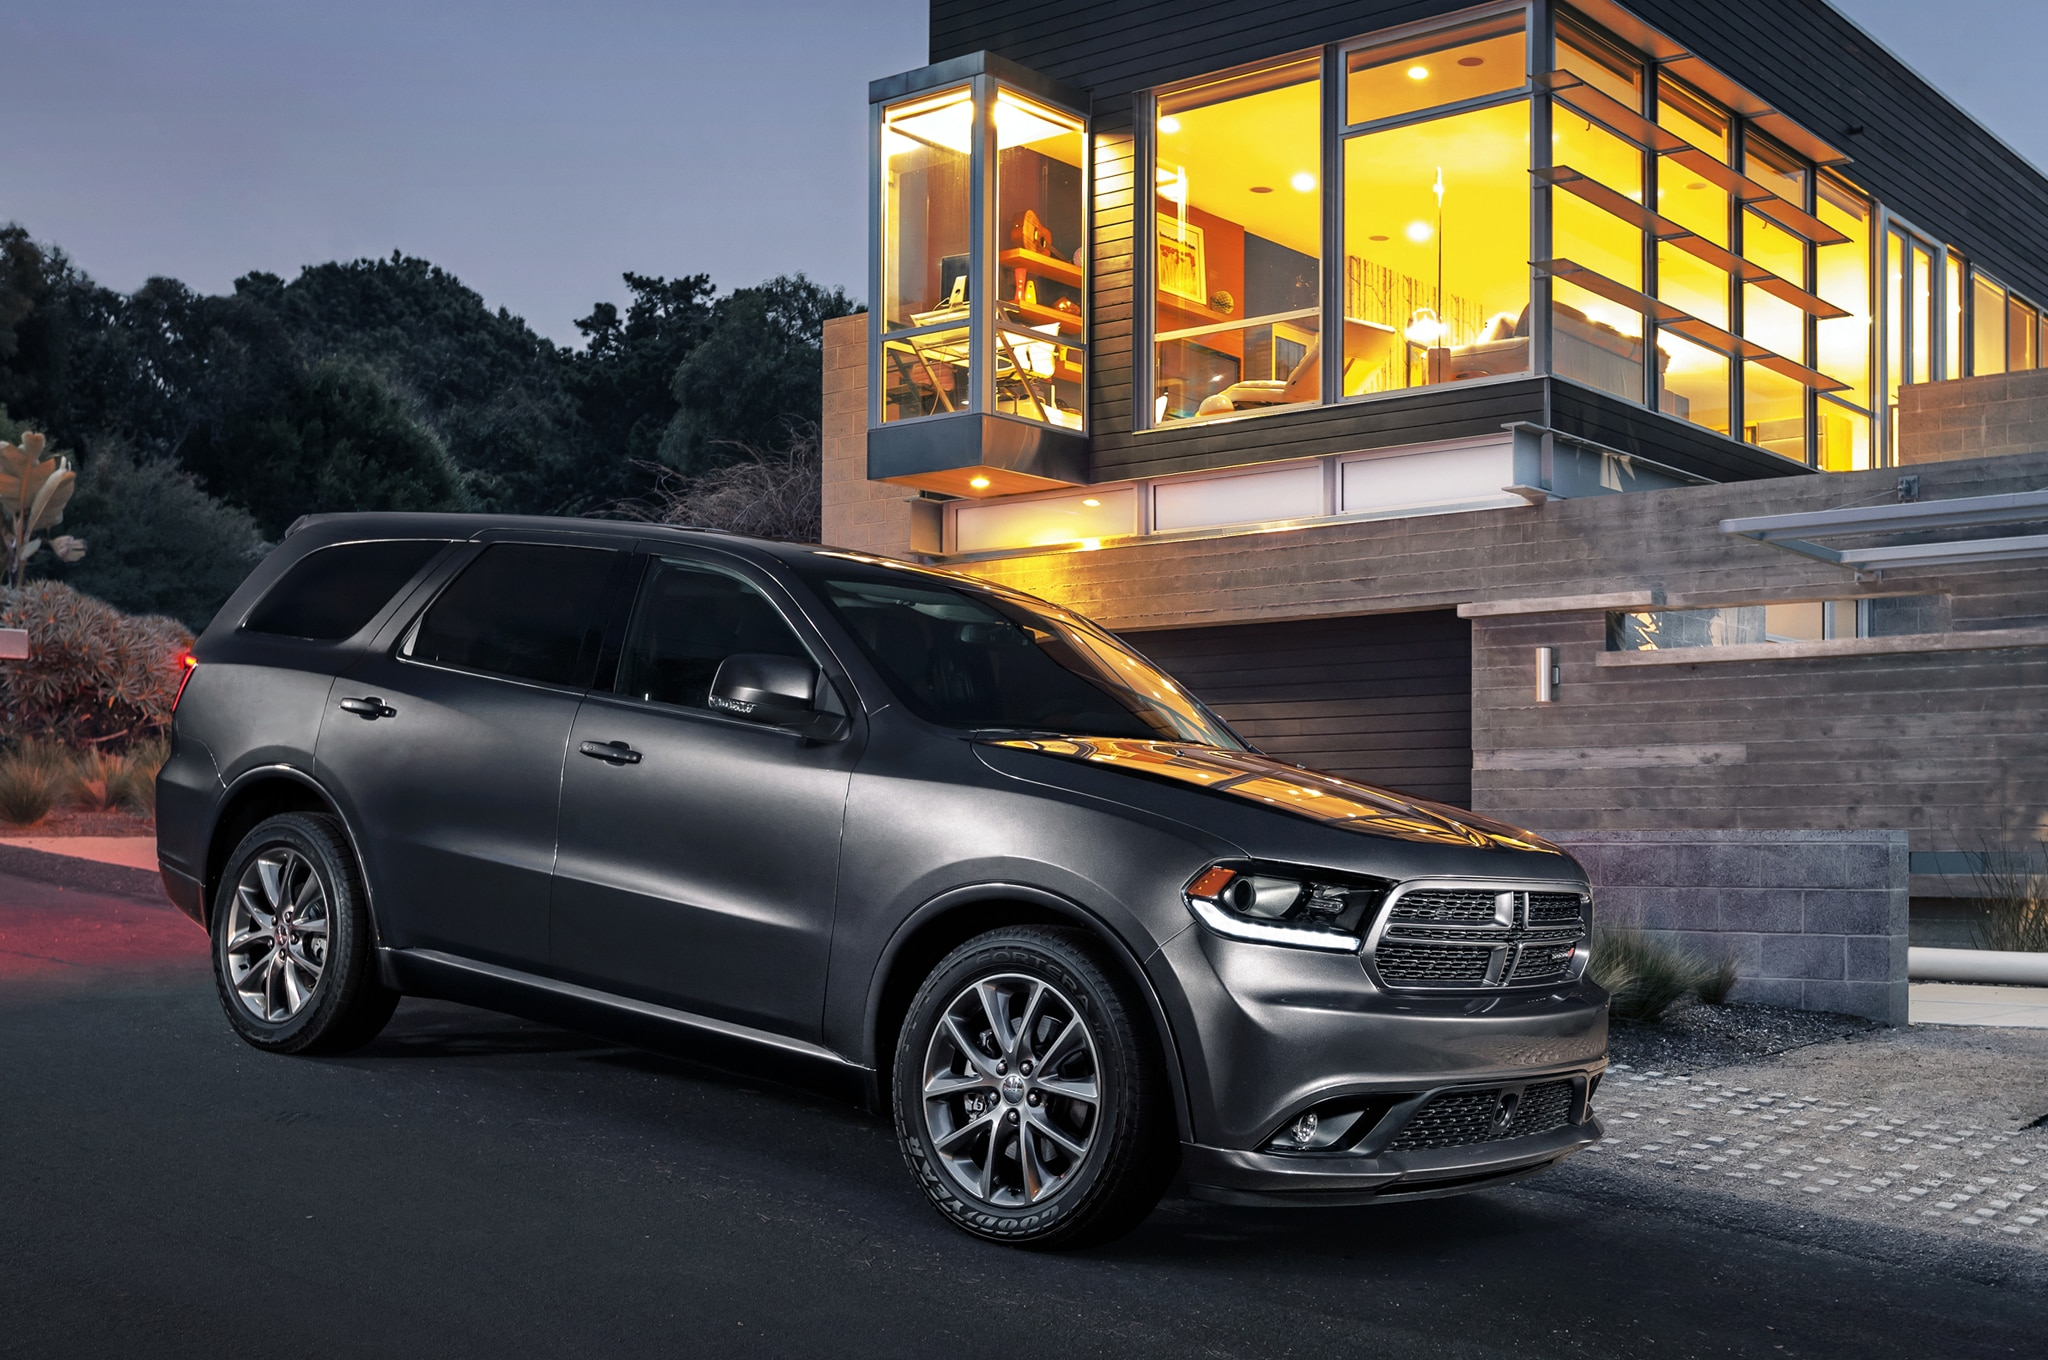 2014 dodge durango gets mean with new blacktop package. Black Bedroom Furniture Sets. Home Design Ideas